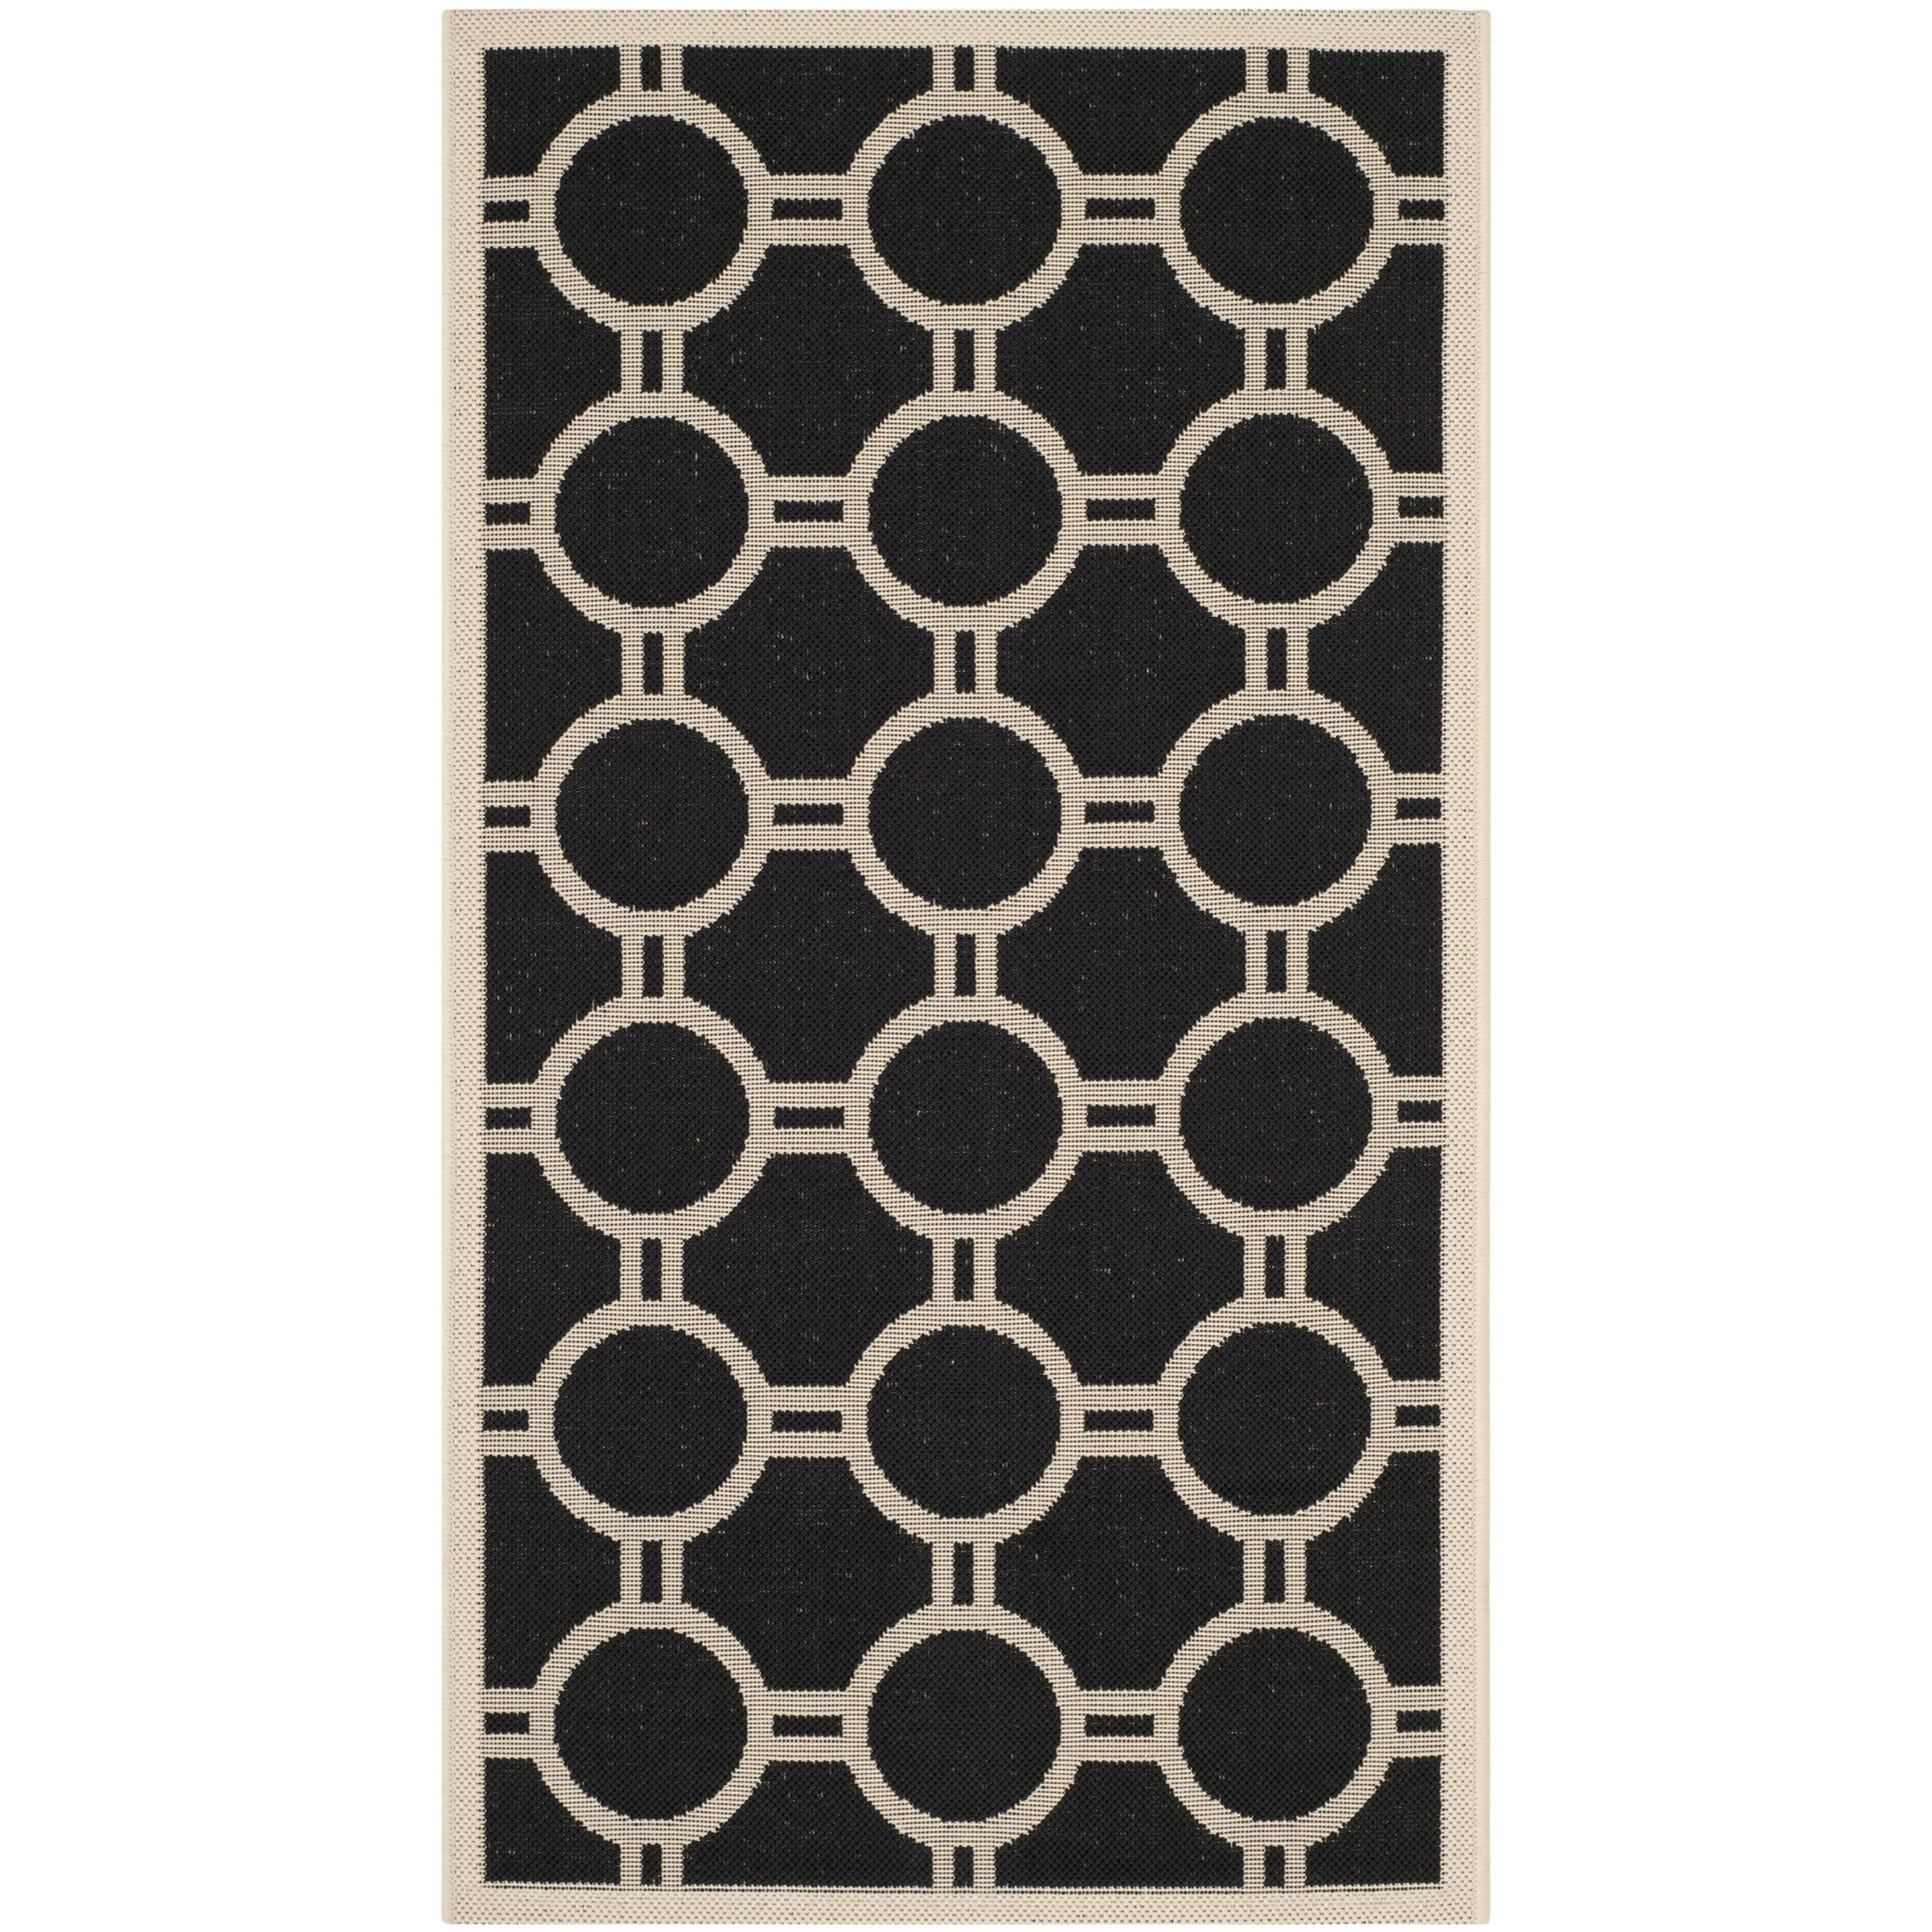 Jefferson Place Black/Beige Outdoor Rug Rug Size: Rectangle 8' x 11'